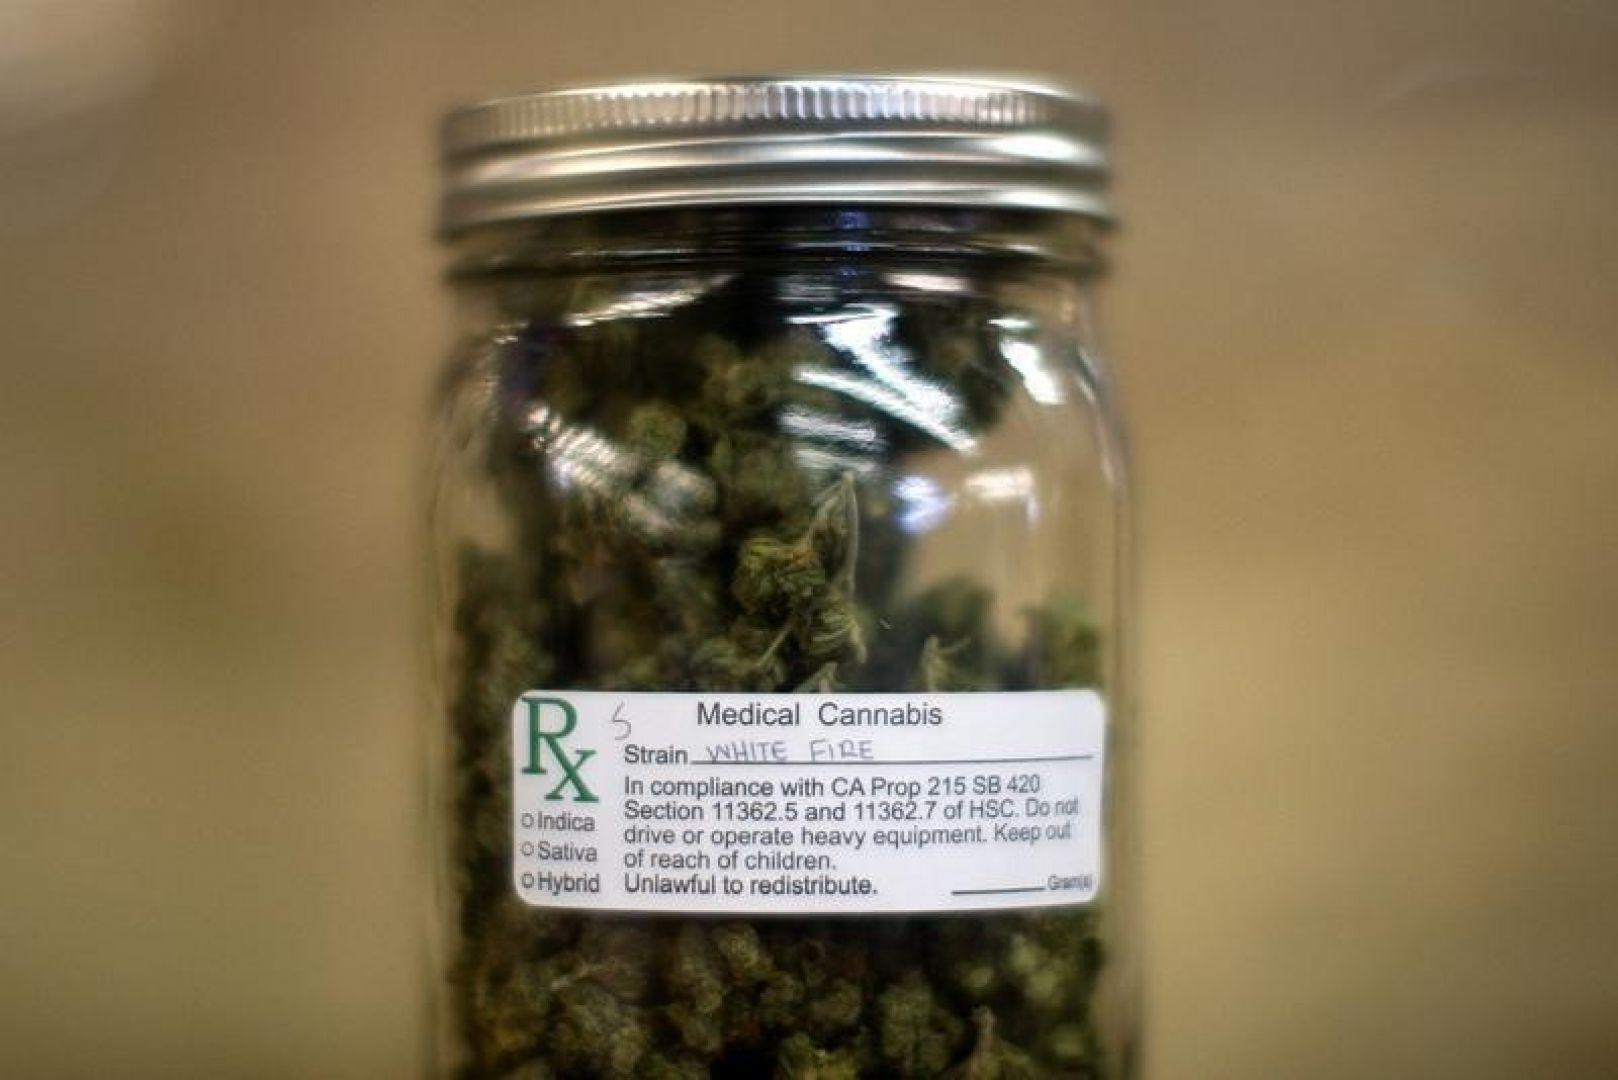 Image of a jar filled with legal medical marijuana